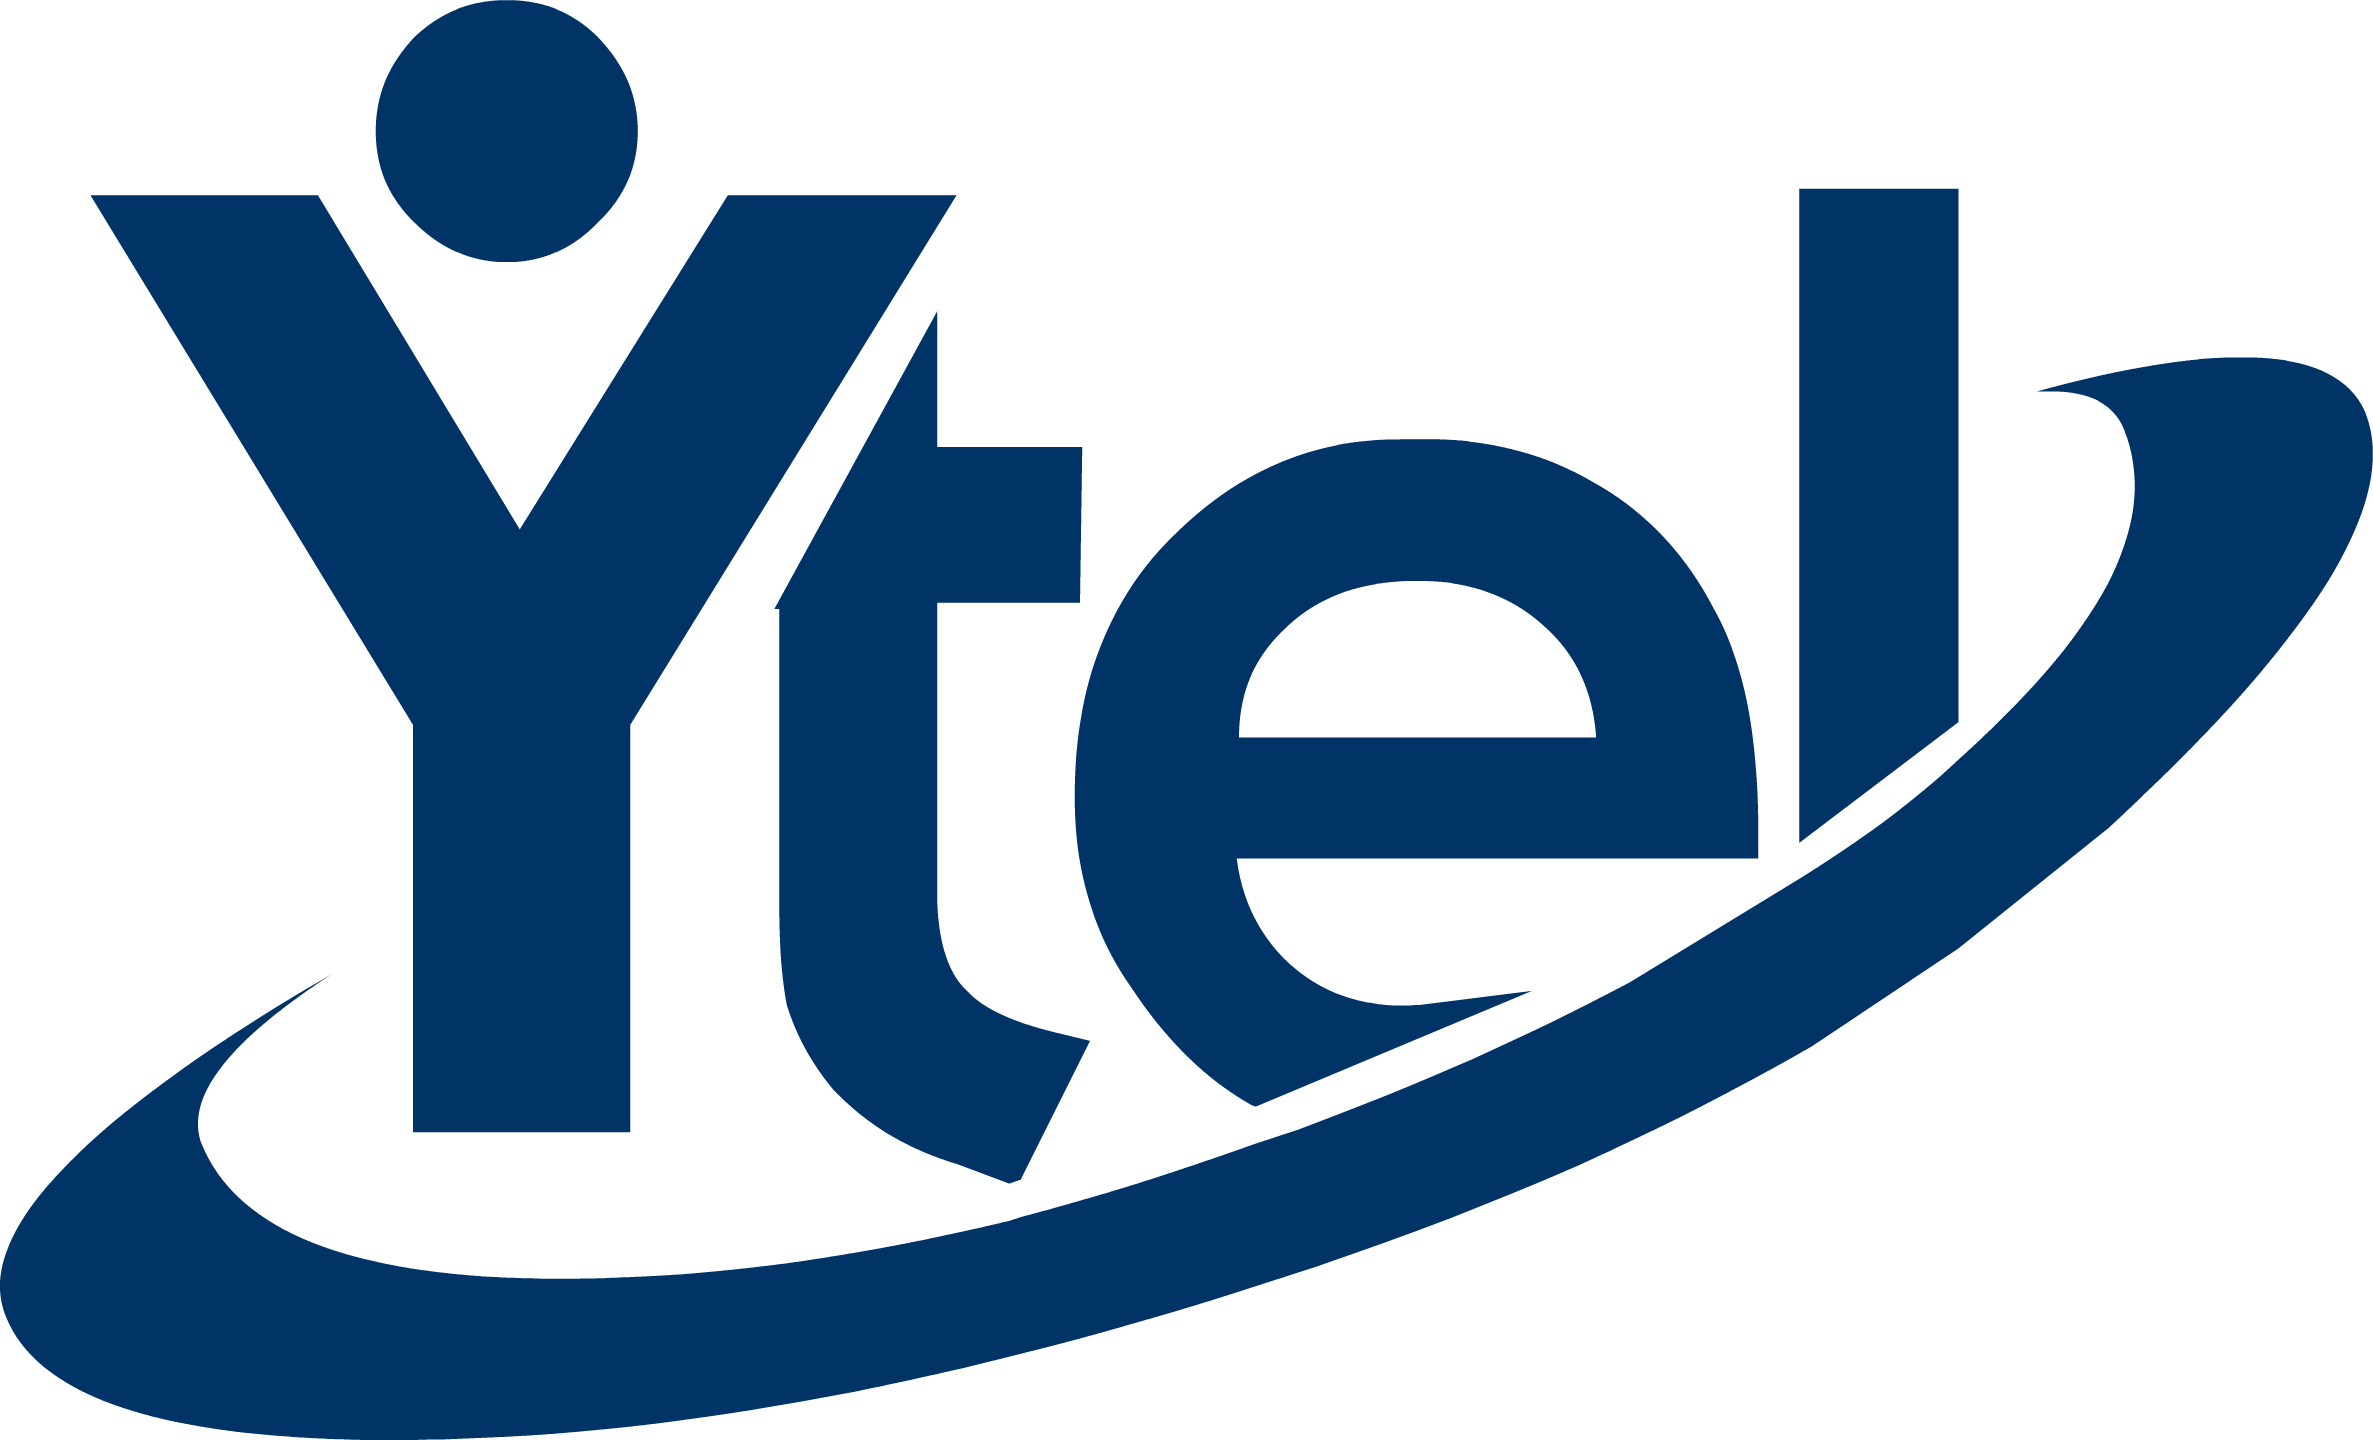 ytel_blue-transparent.png